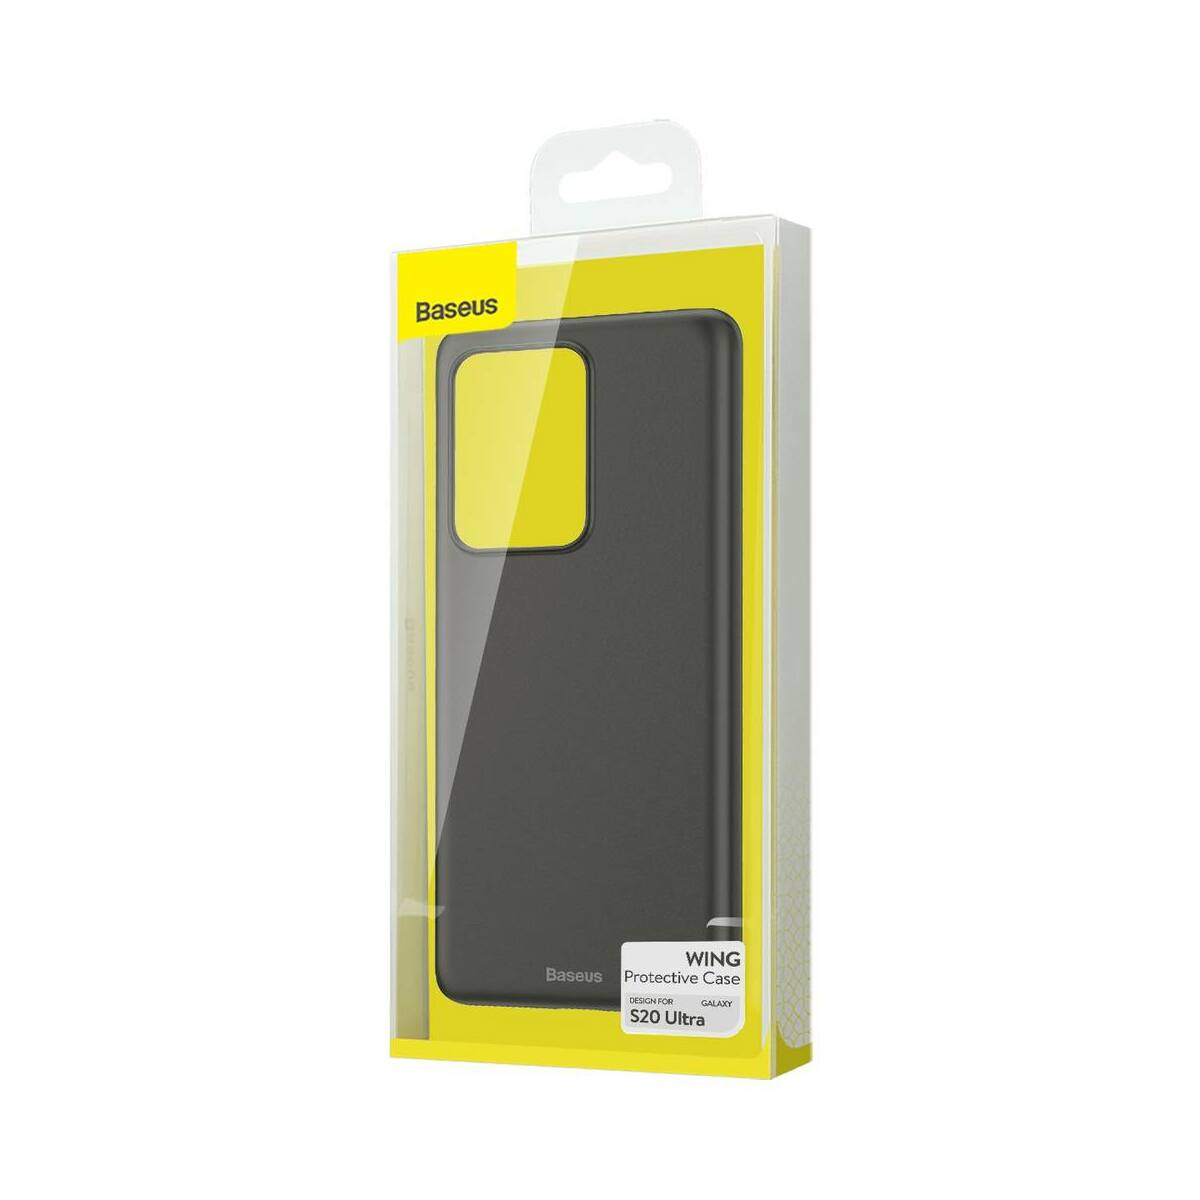 Baseus Samsung S20 Ultra tok, Wing, Solid, fekete (WISAS20U-A01)